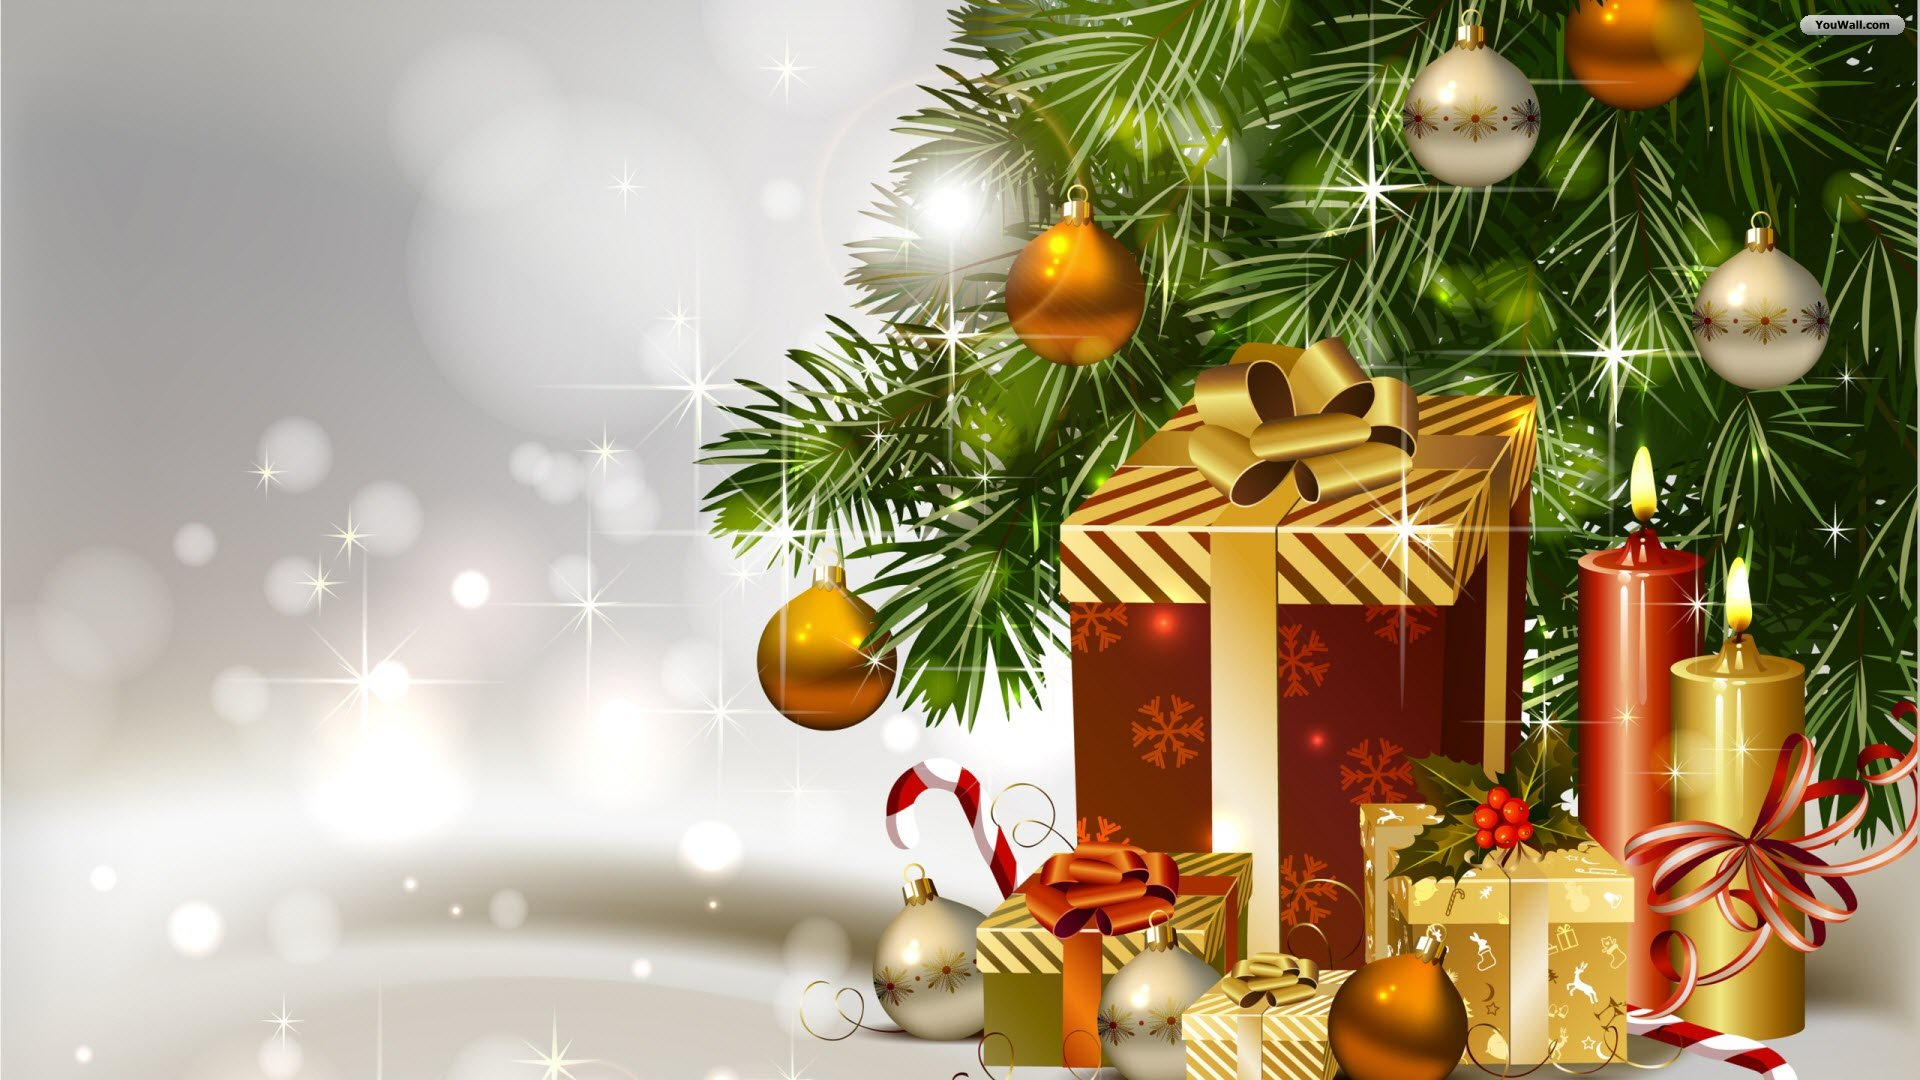 1000+ images about Christmas Wallpapers on Pinterest | Christmas